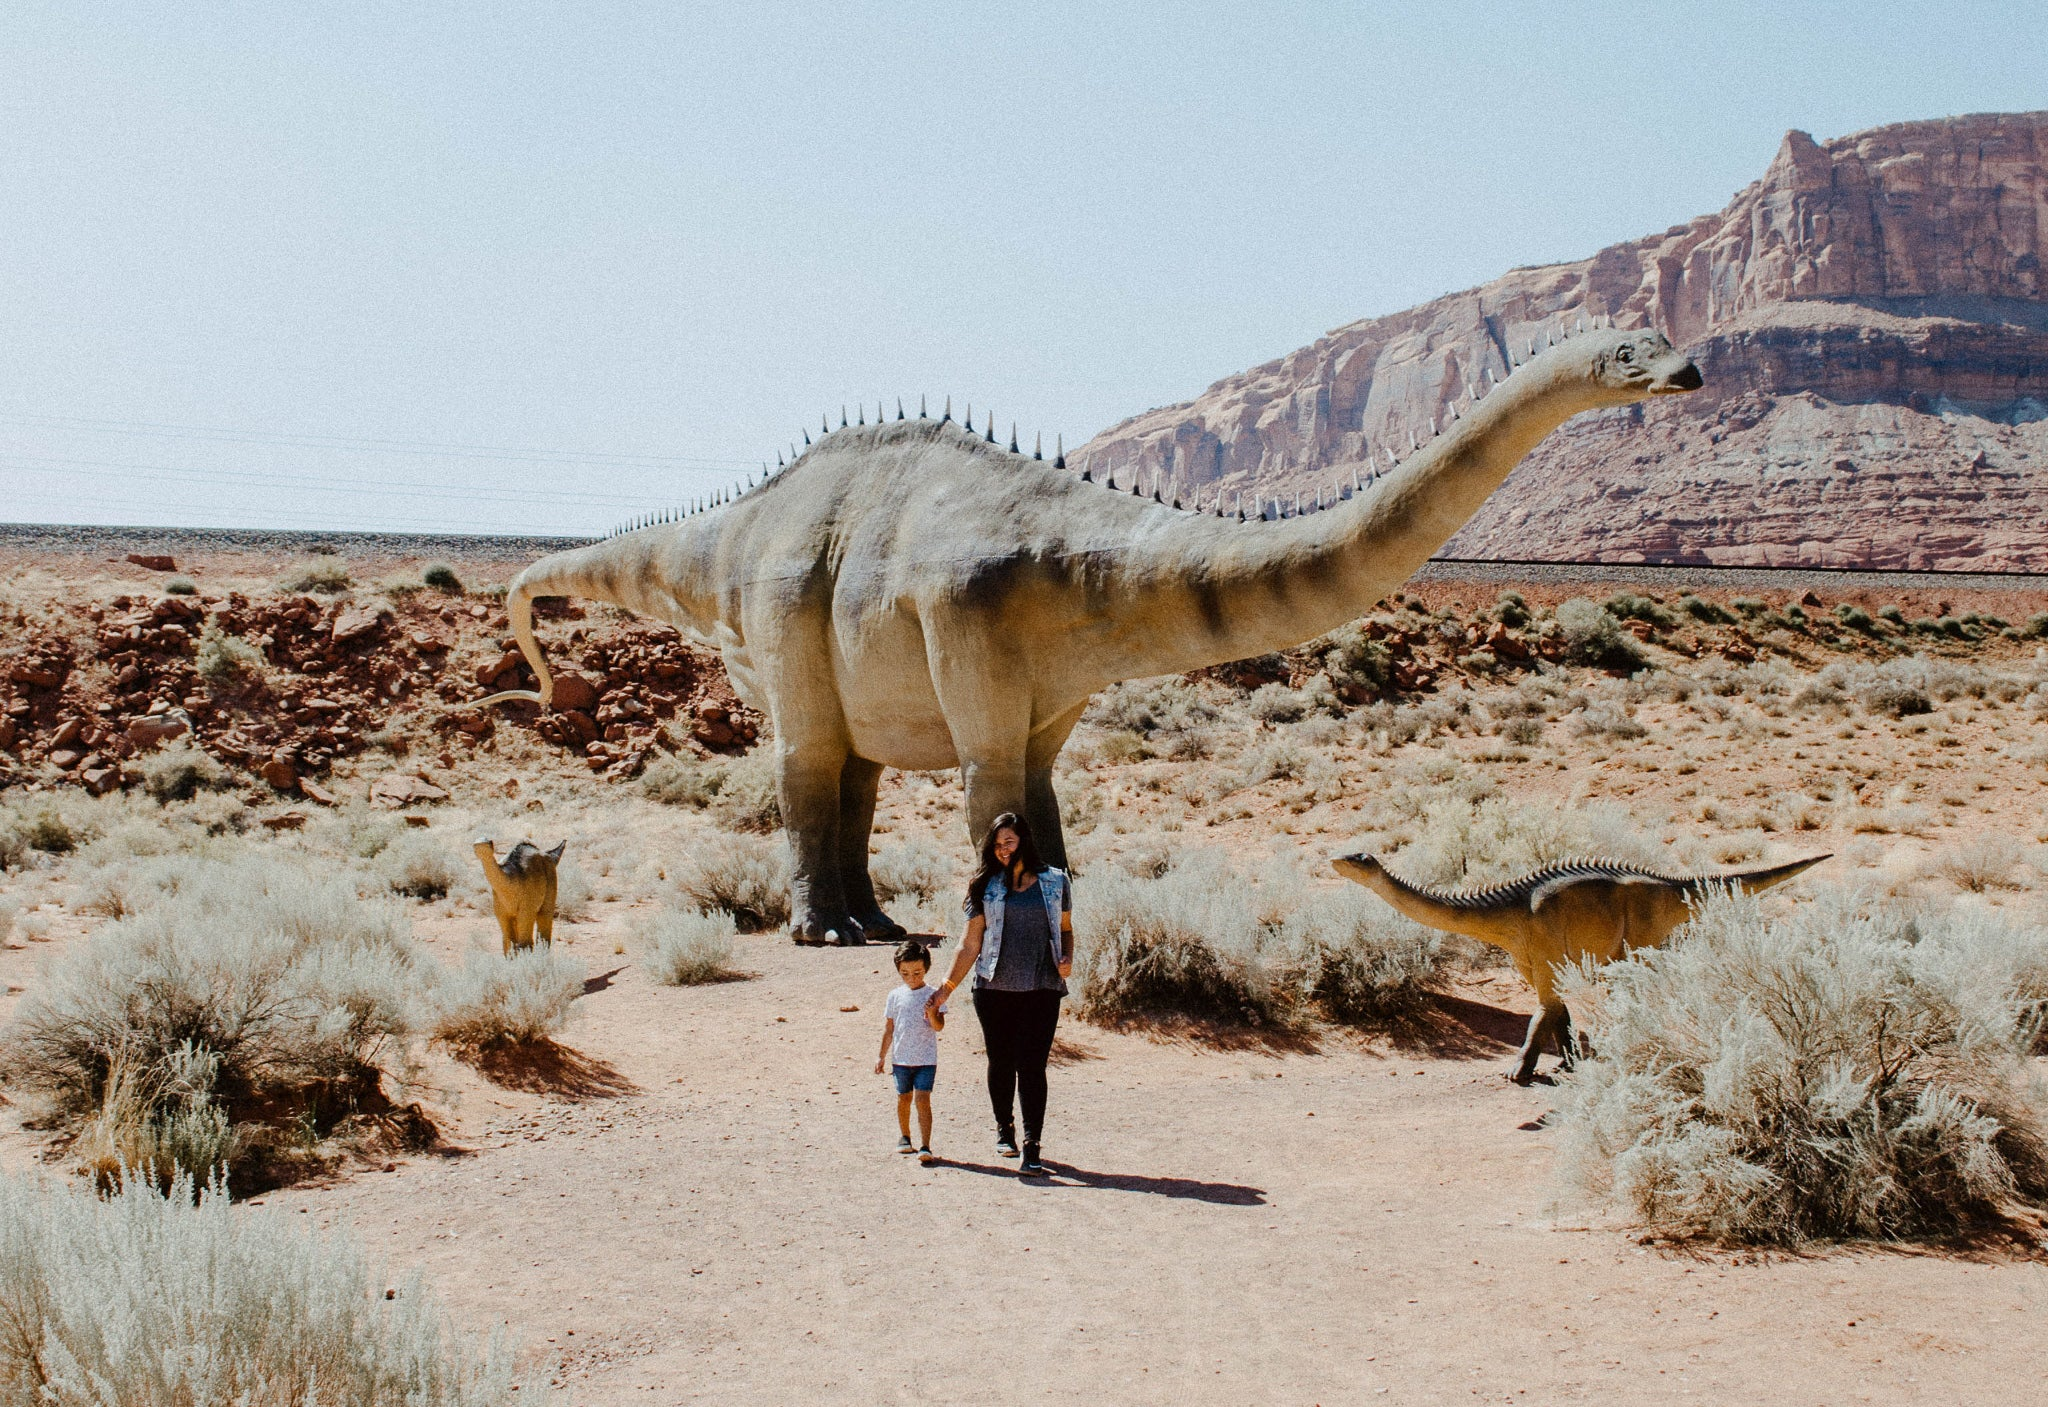 woman and child walking in front of dinosaur statues